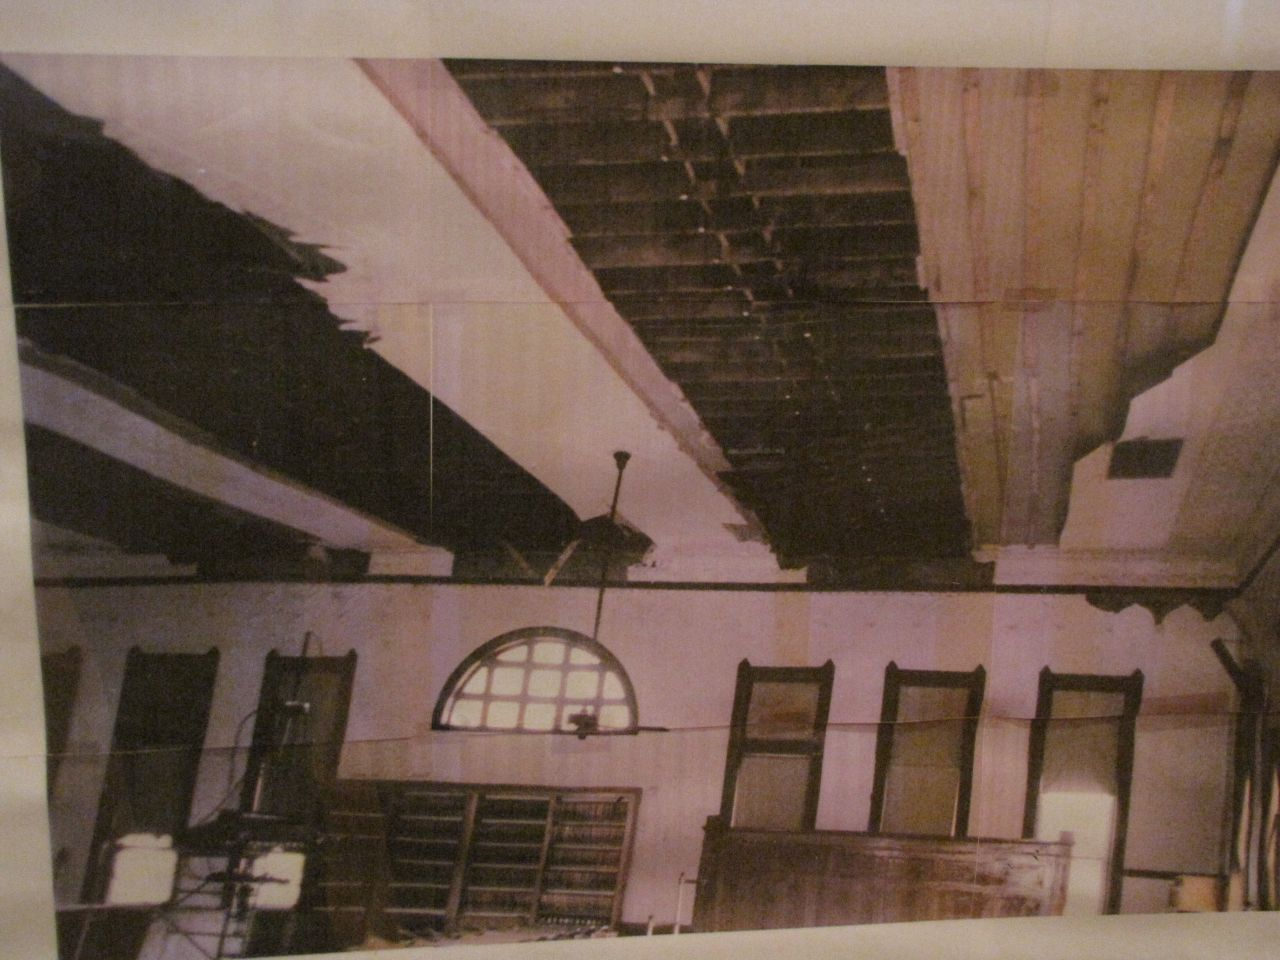 Photo showing damage from roof collapse